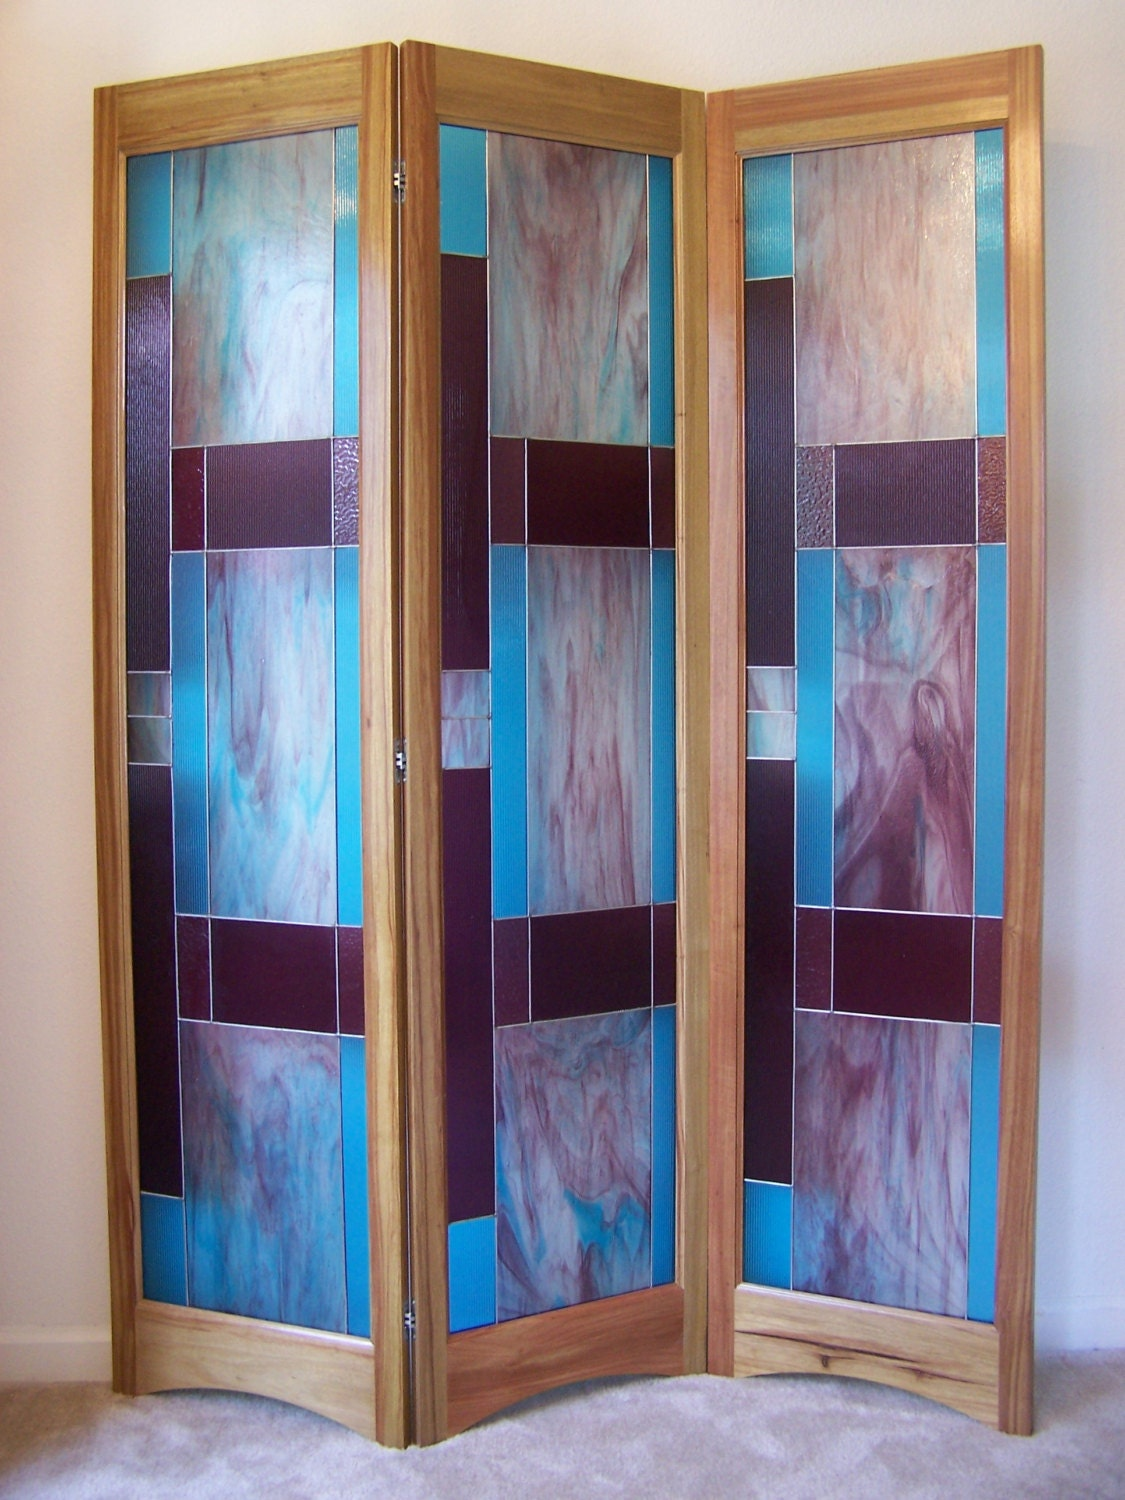 Stained glass room divider 3 panel screen bordeaux model by for Window dividers